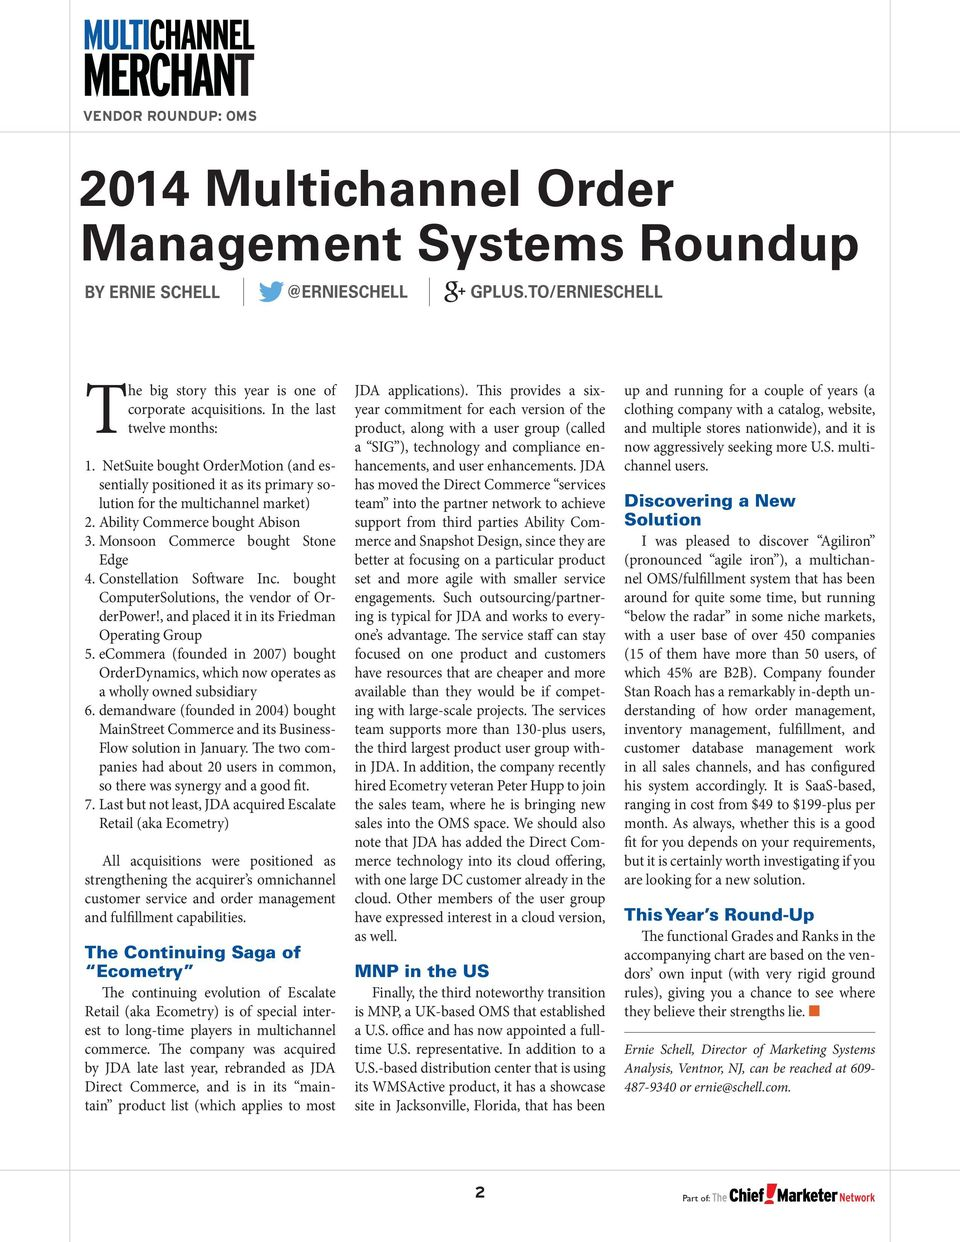 Constellation Software Inc. bought ComputerSolutions, the vendor of OrderPower!, and placed it in its Friedman Operating Group 5.